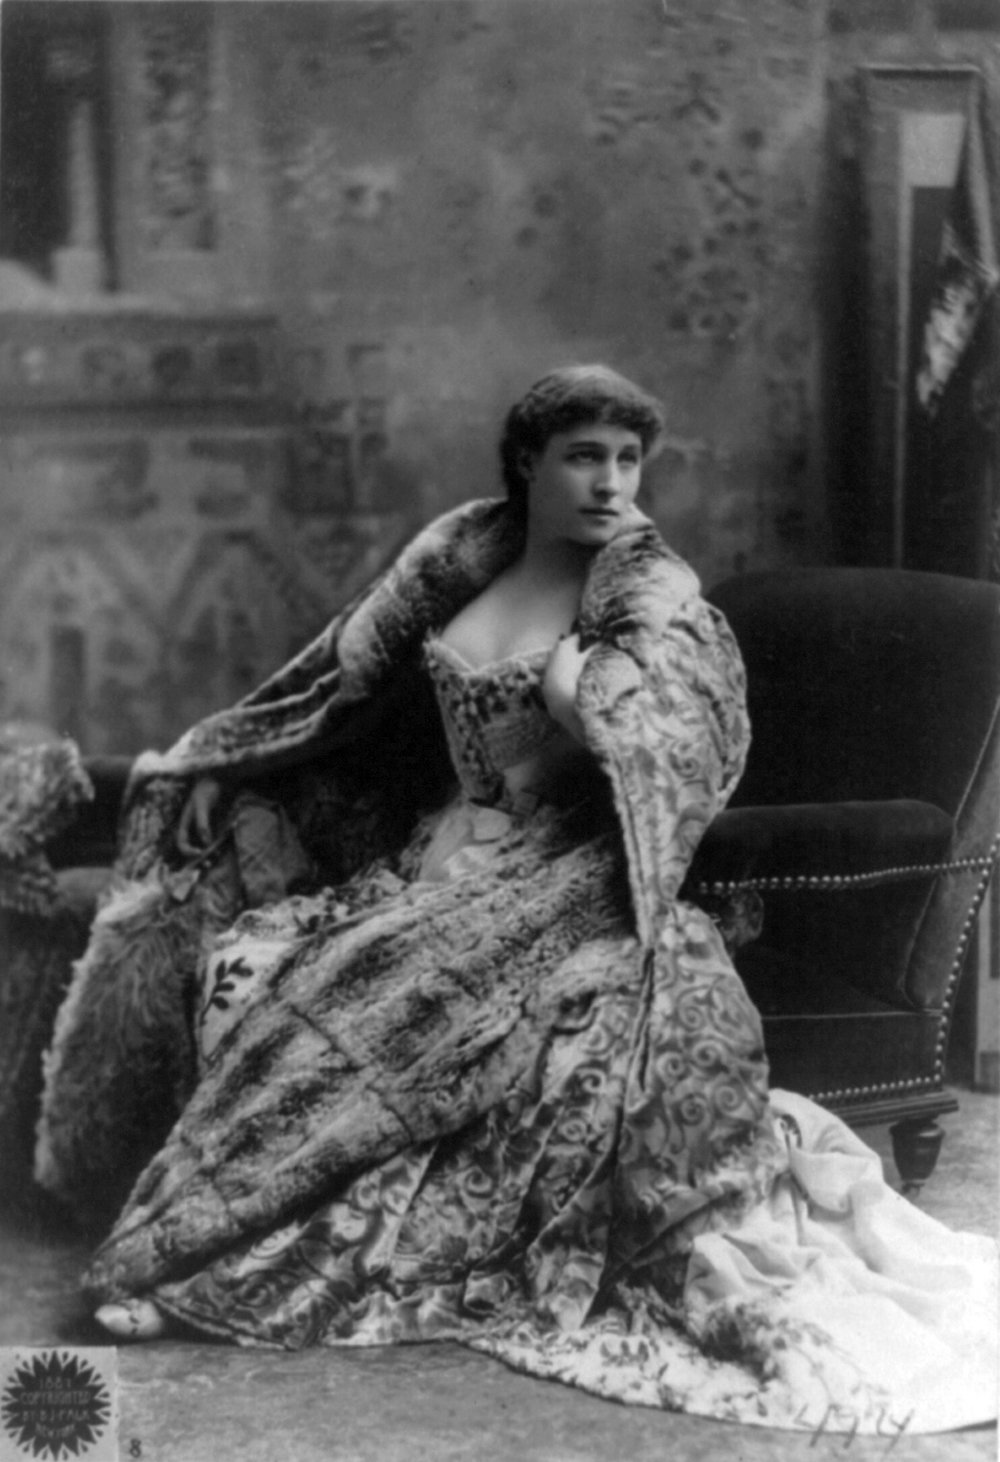 Lillie_Langtry_cph.3b32960.jpg